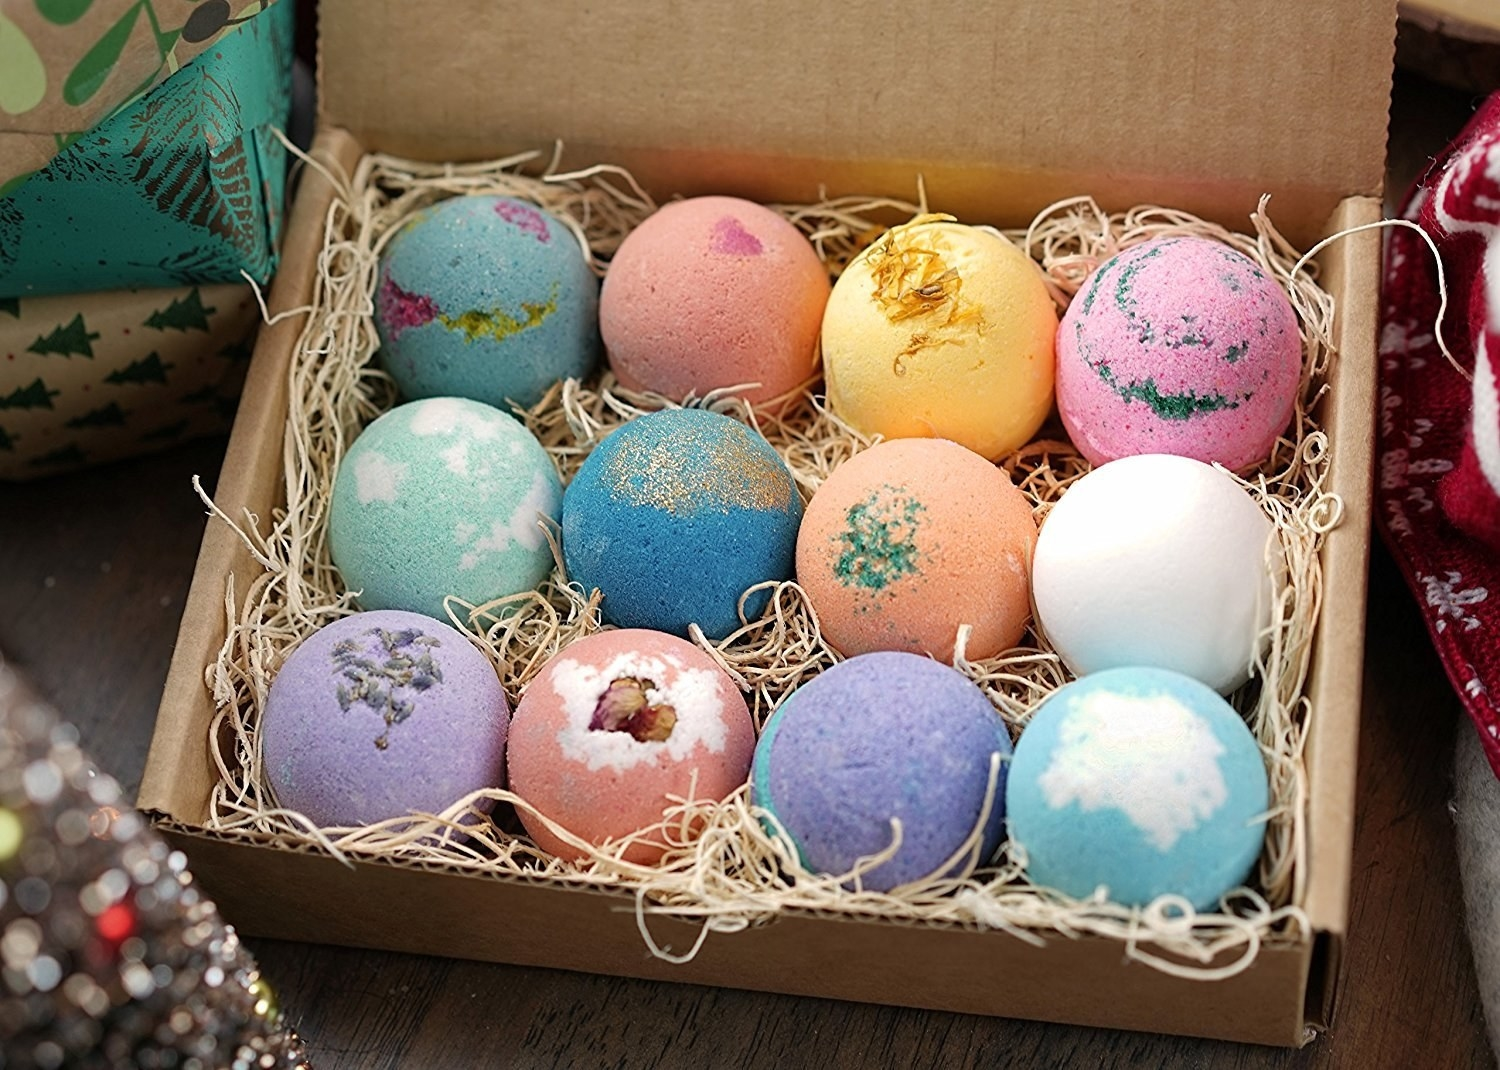 a box of assorted bath bombs